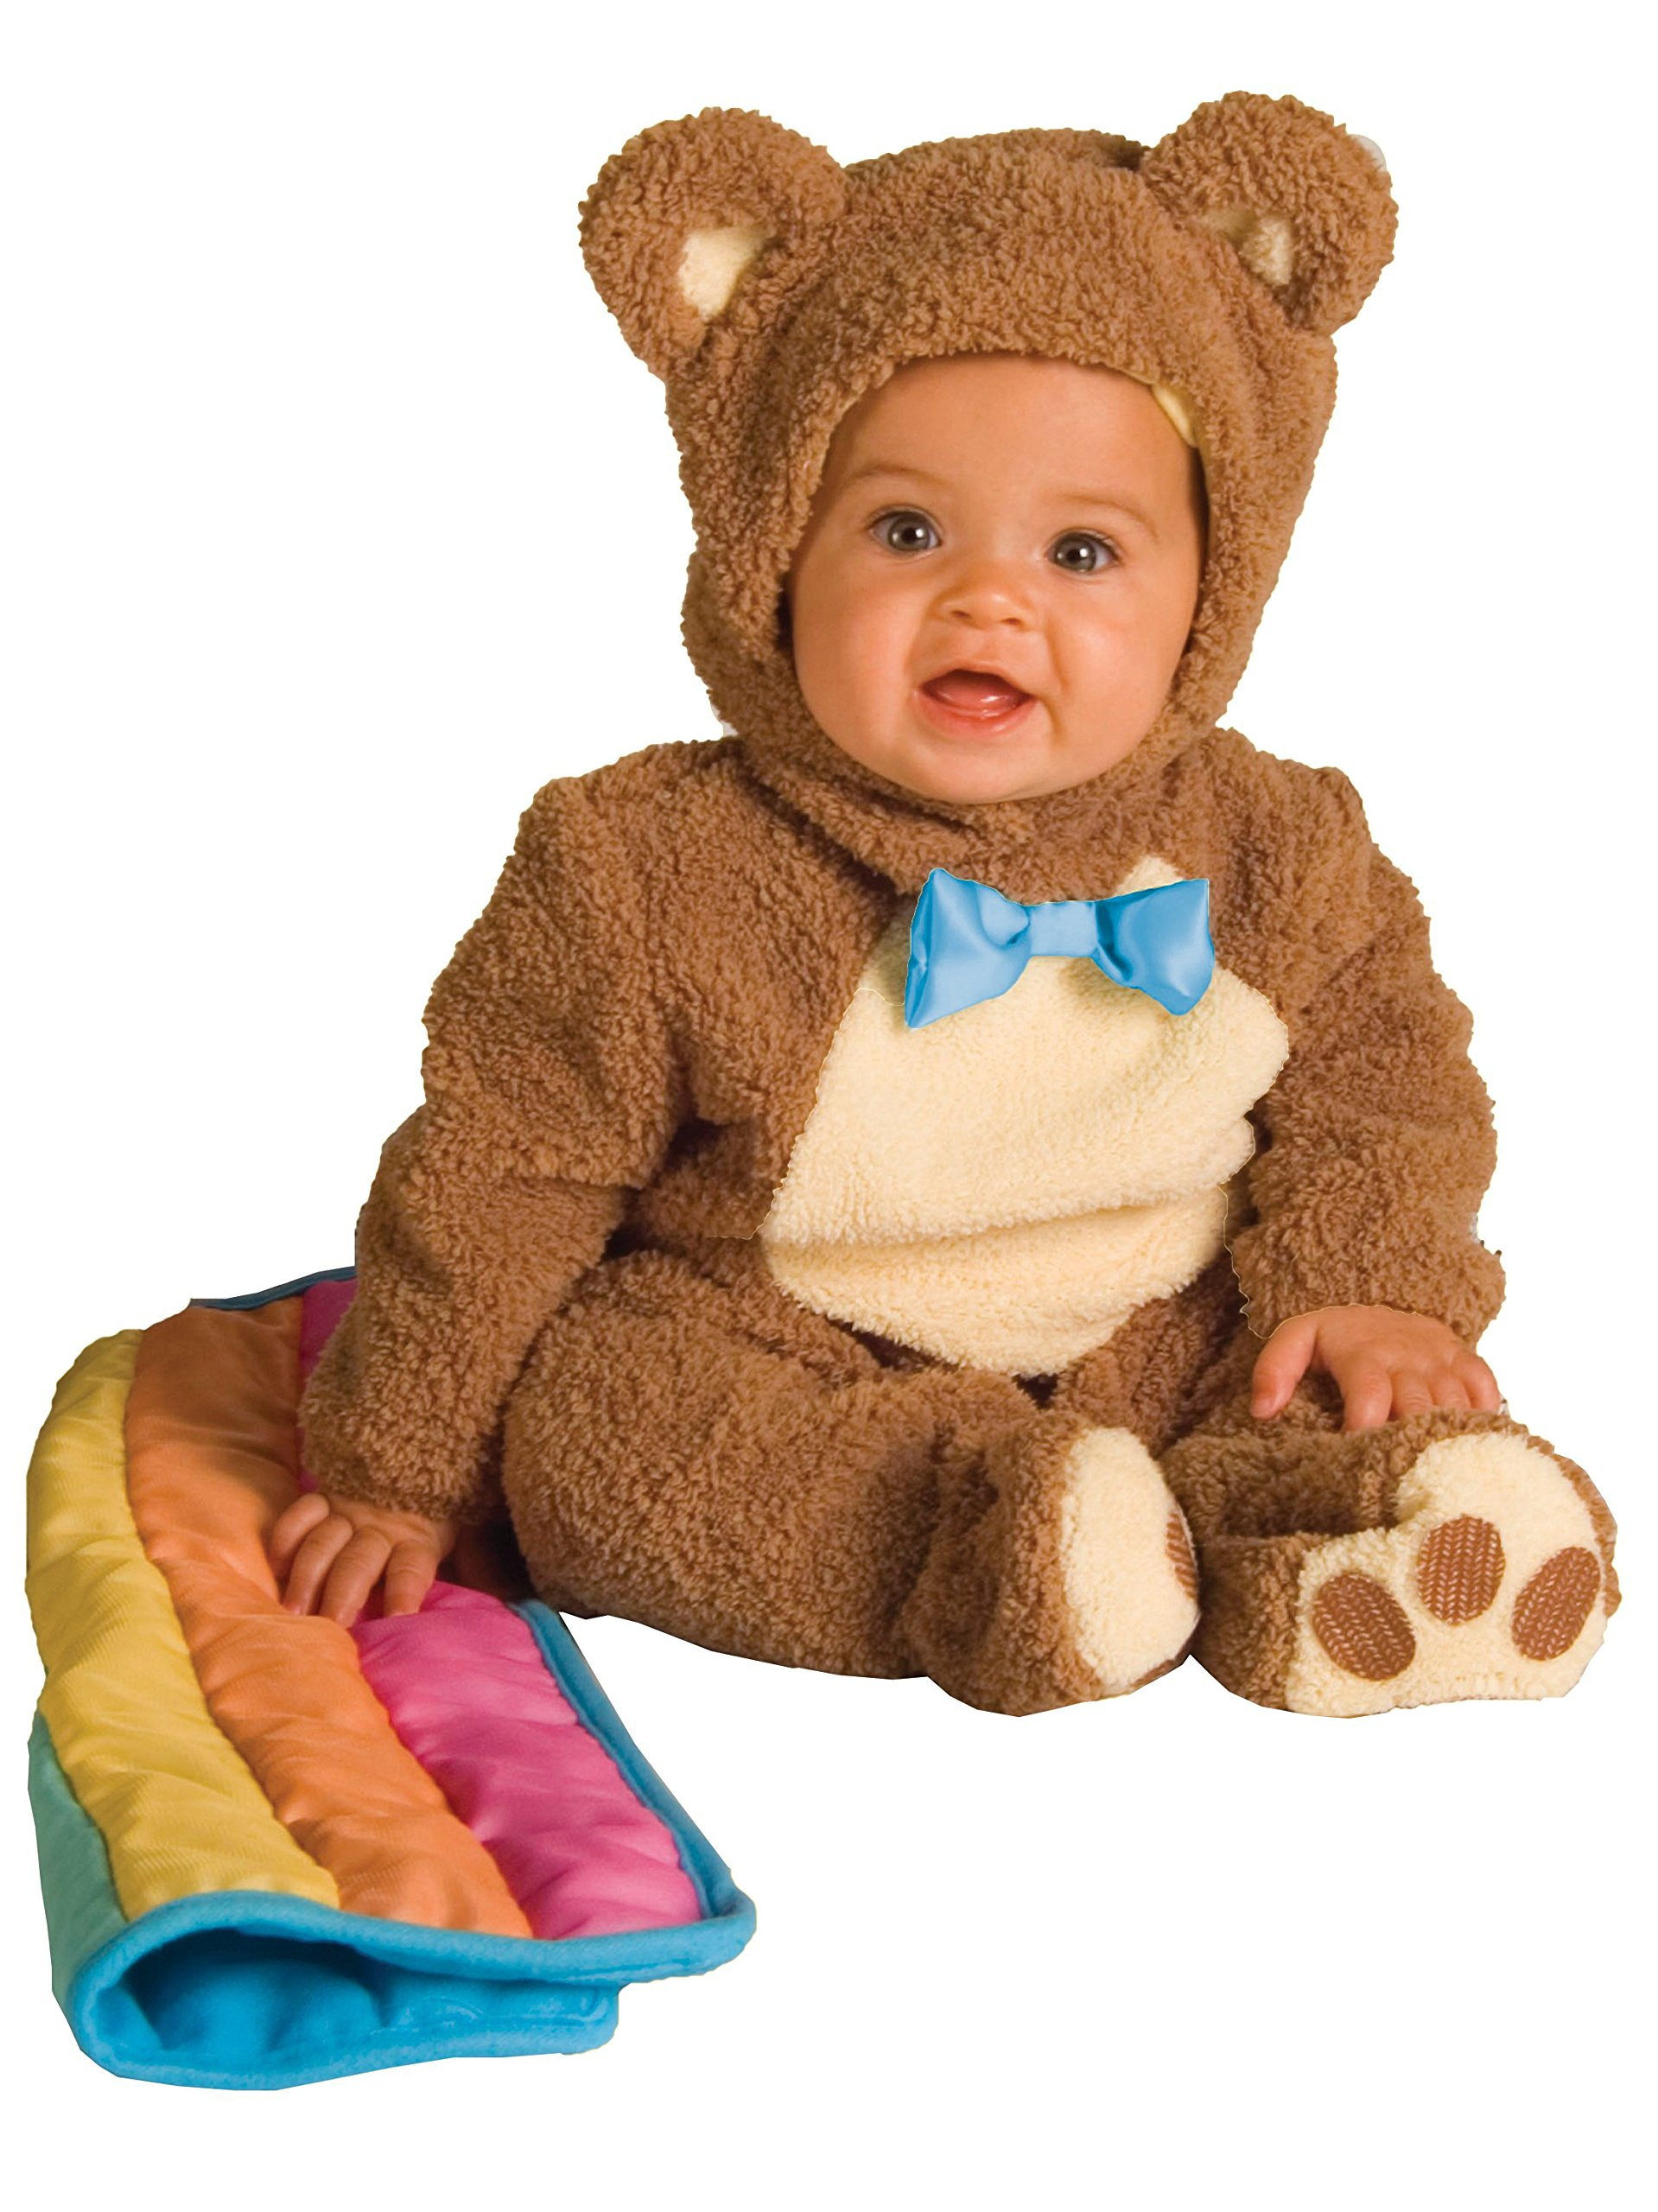 Oatmeal Bear Baby Infant Costume - Baby 18-24